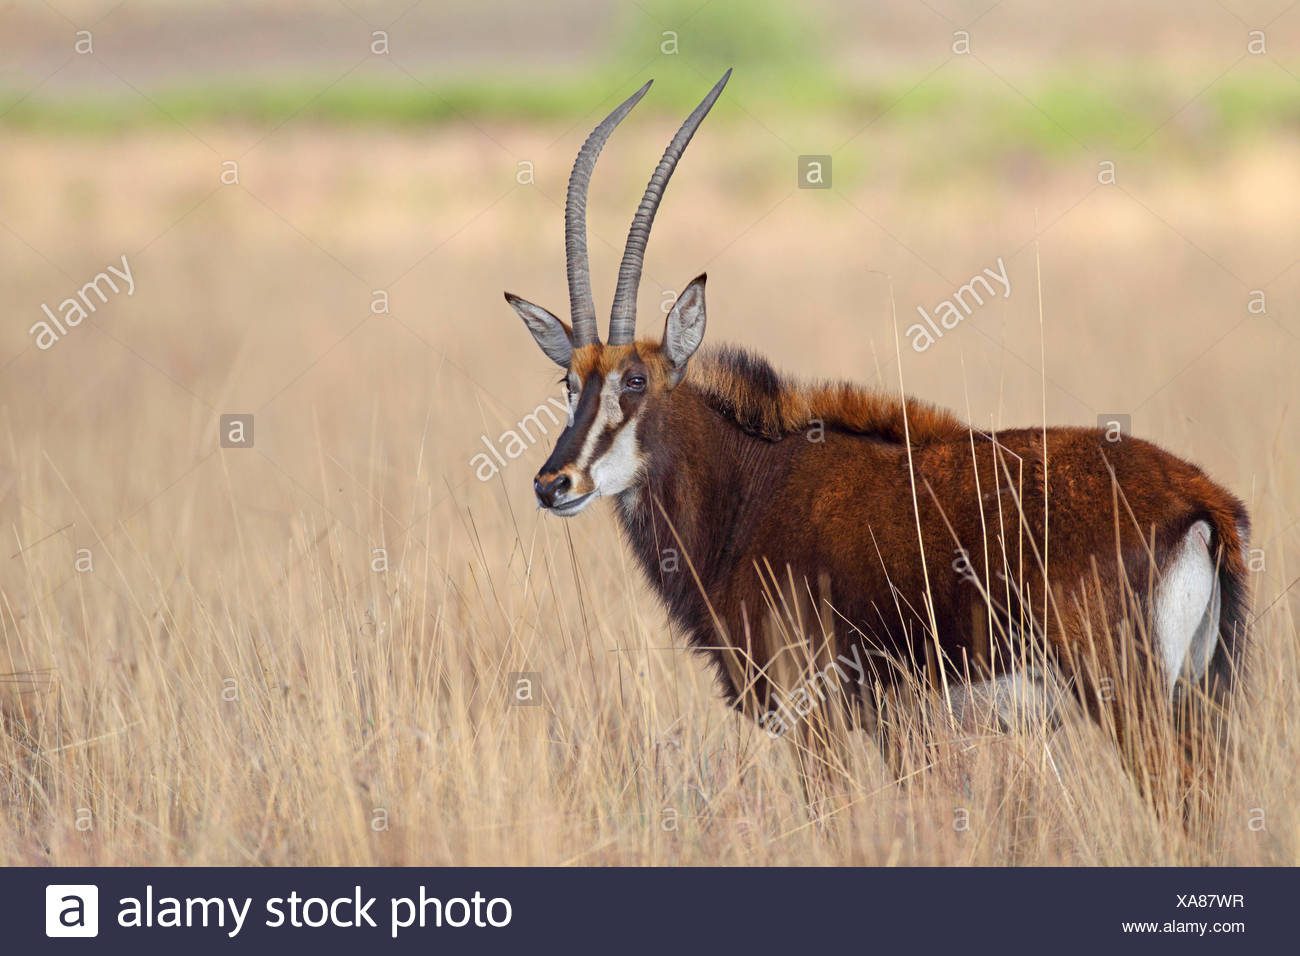 South African Sable Antelope (Hippotragus niger niger), female in savannah, South Africa, Kgaswane Mountain Reserve - Stock Image